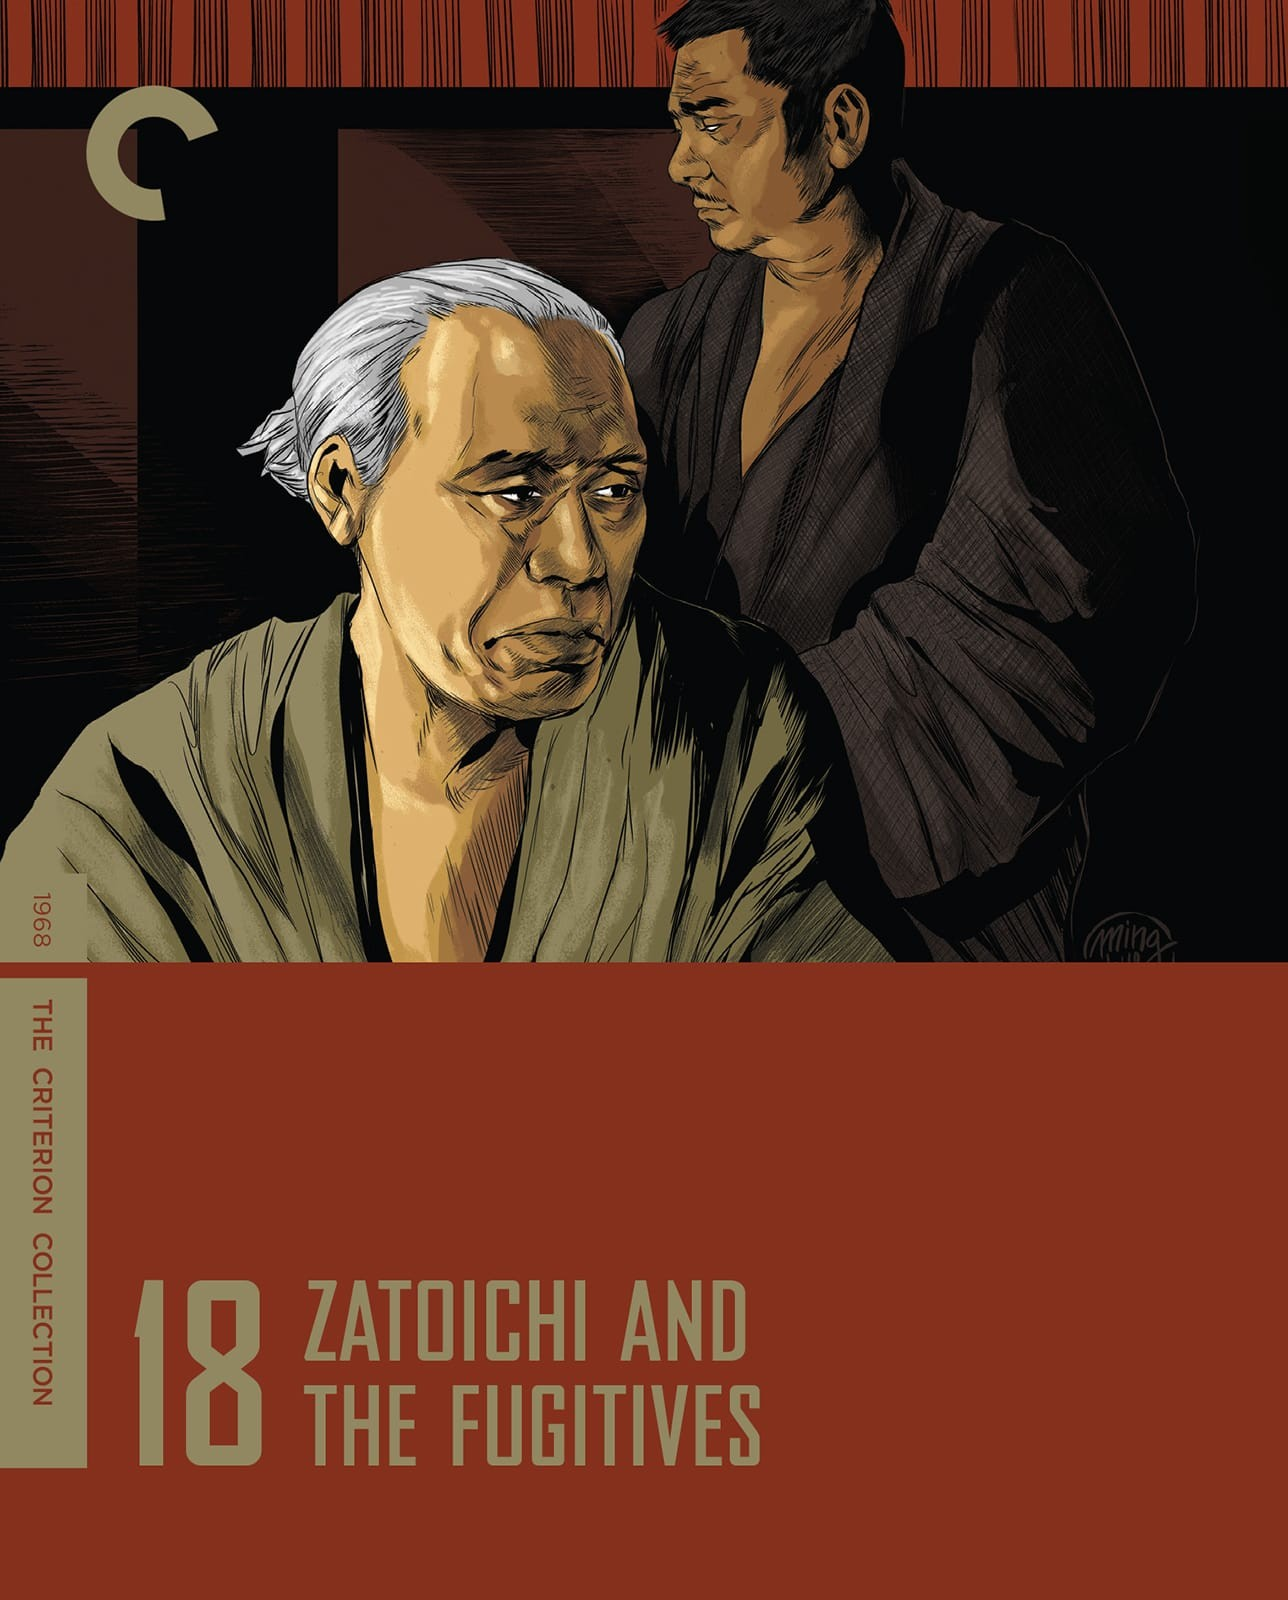 Zatoichi and the Fugitives